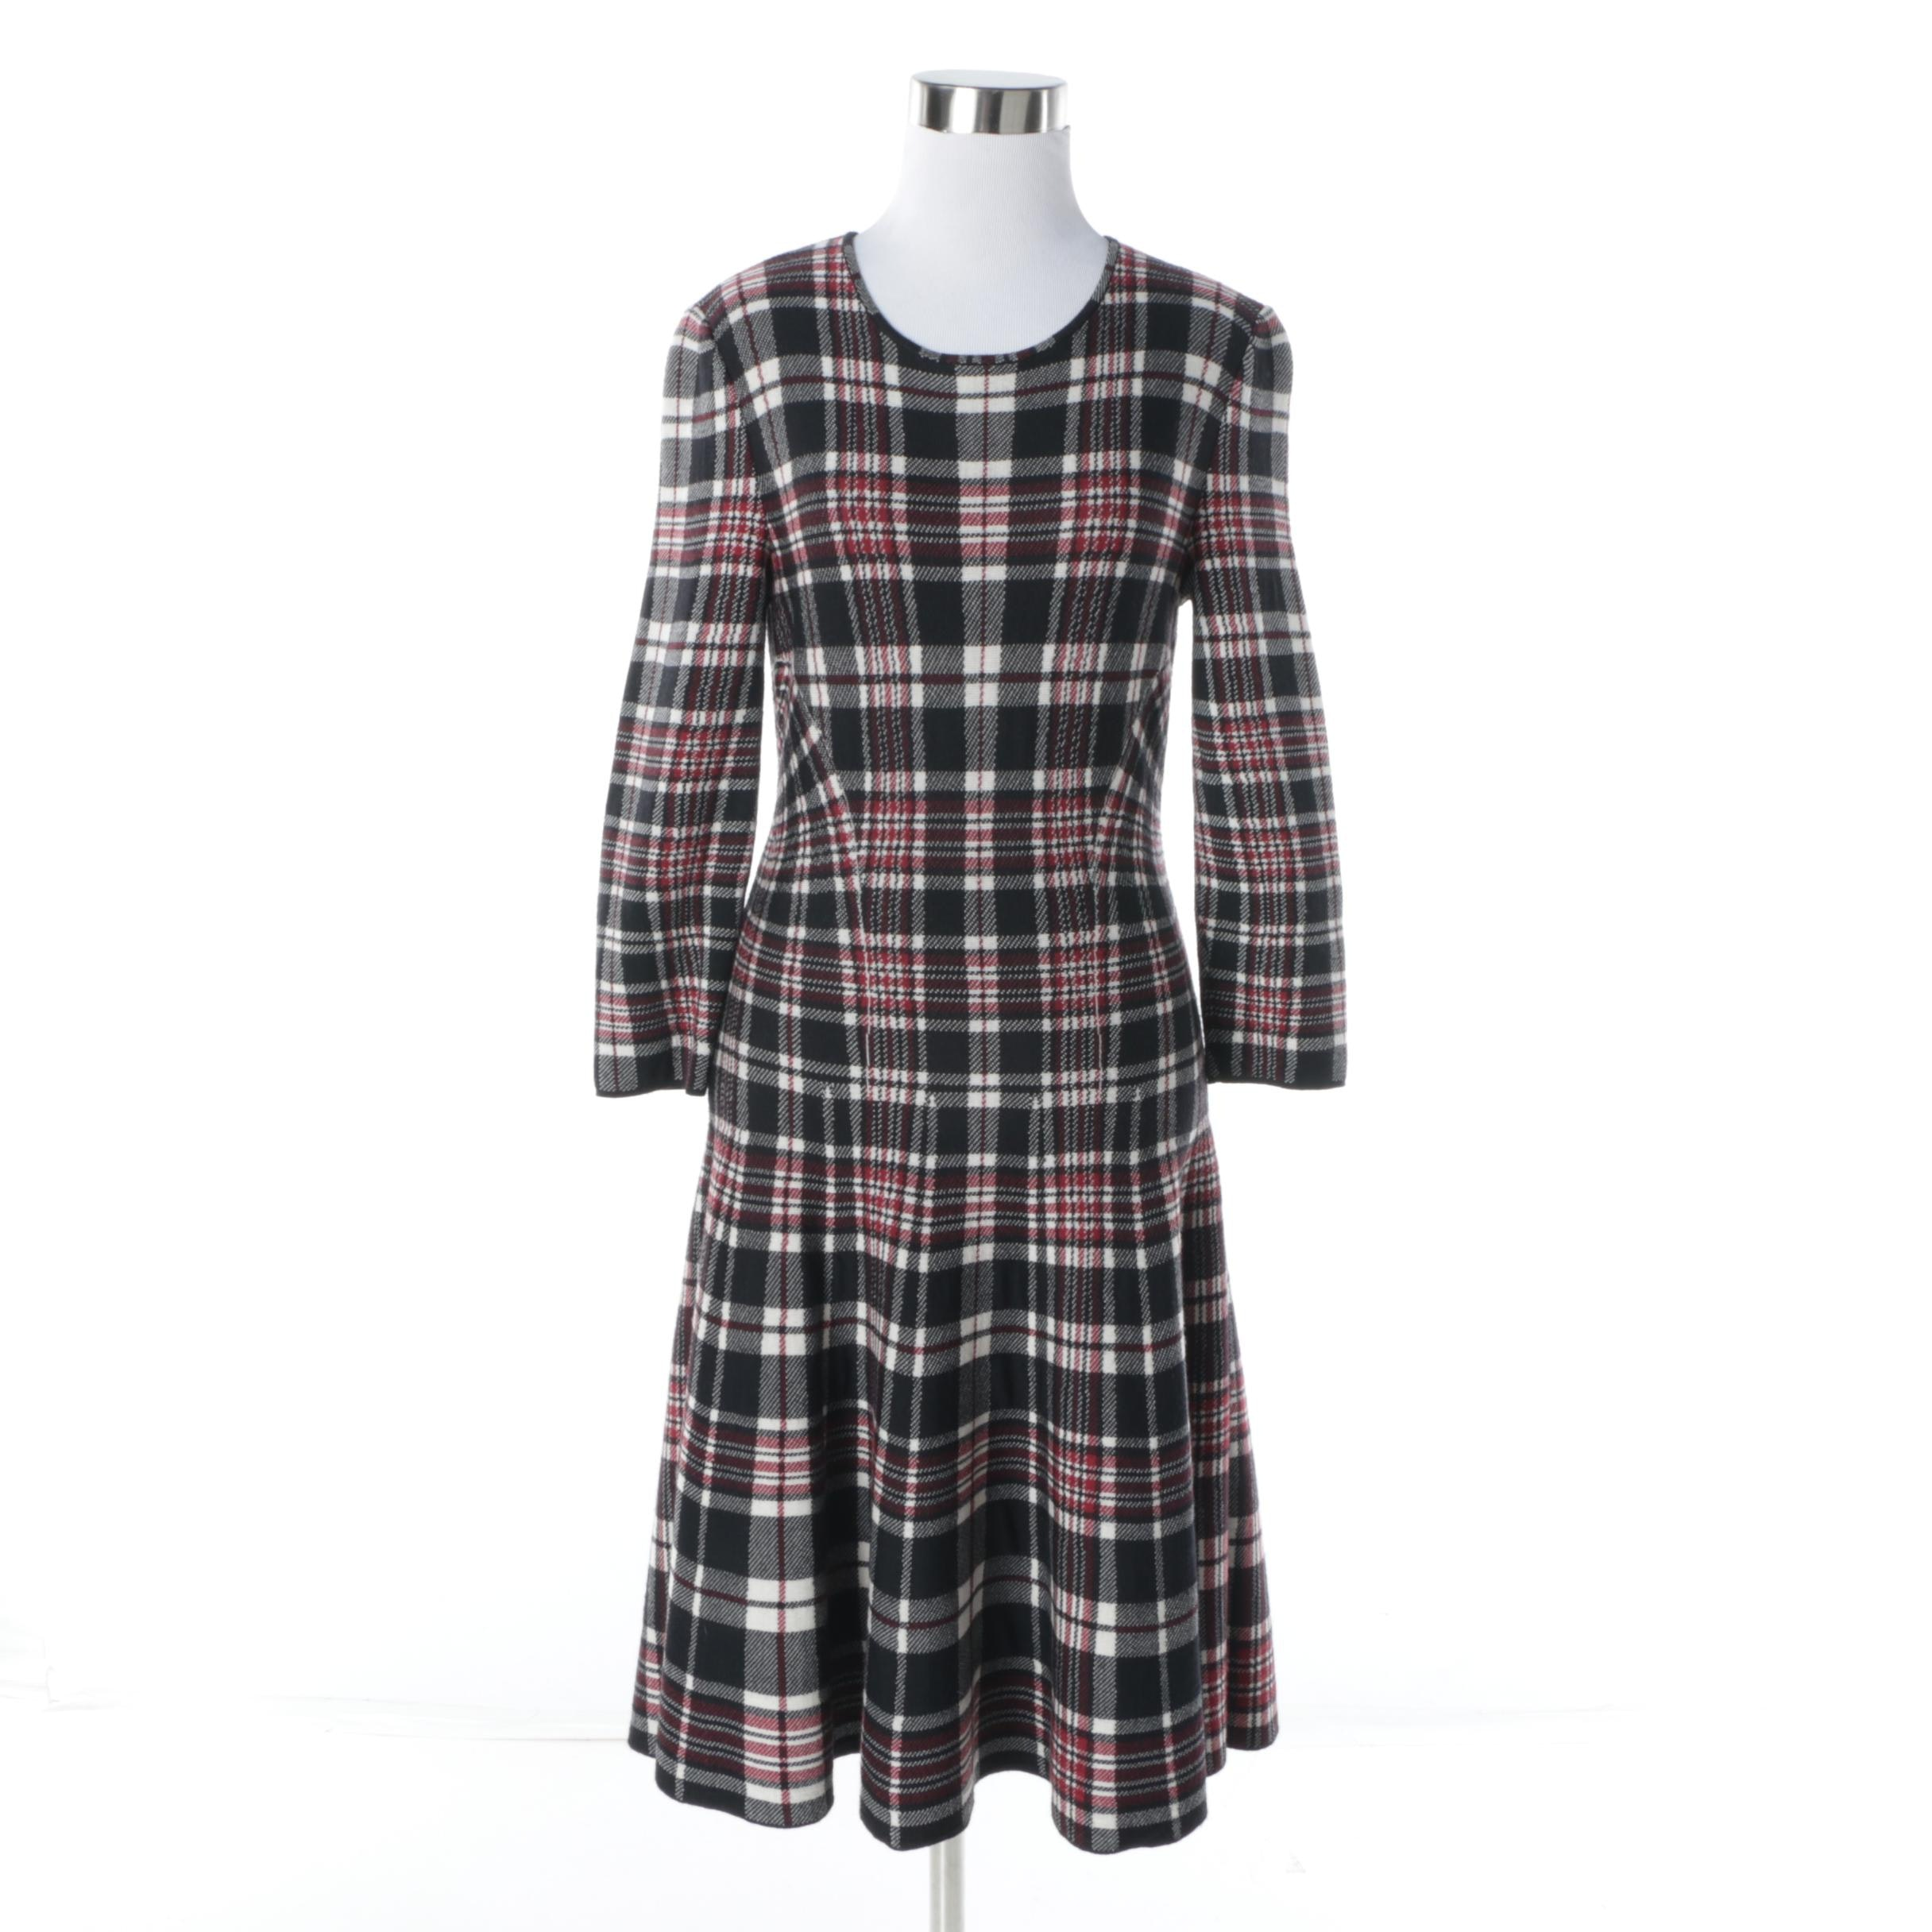 Alexander McQueen Red Plaid Dress, Made in Italy